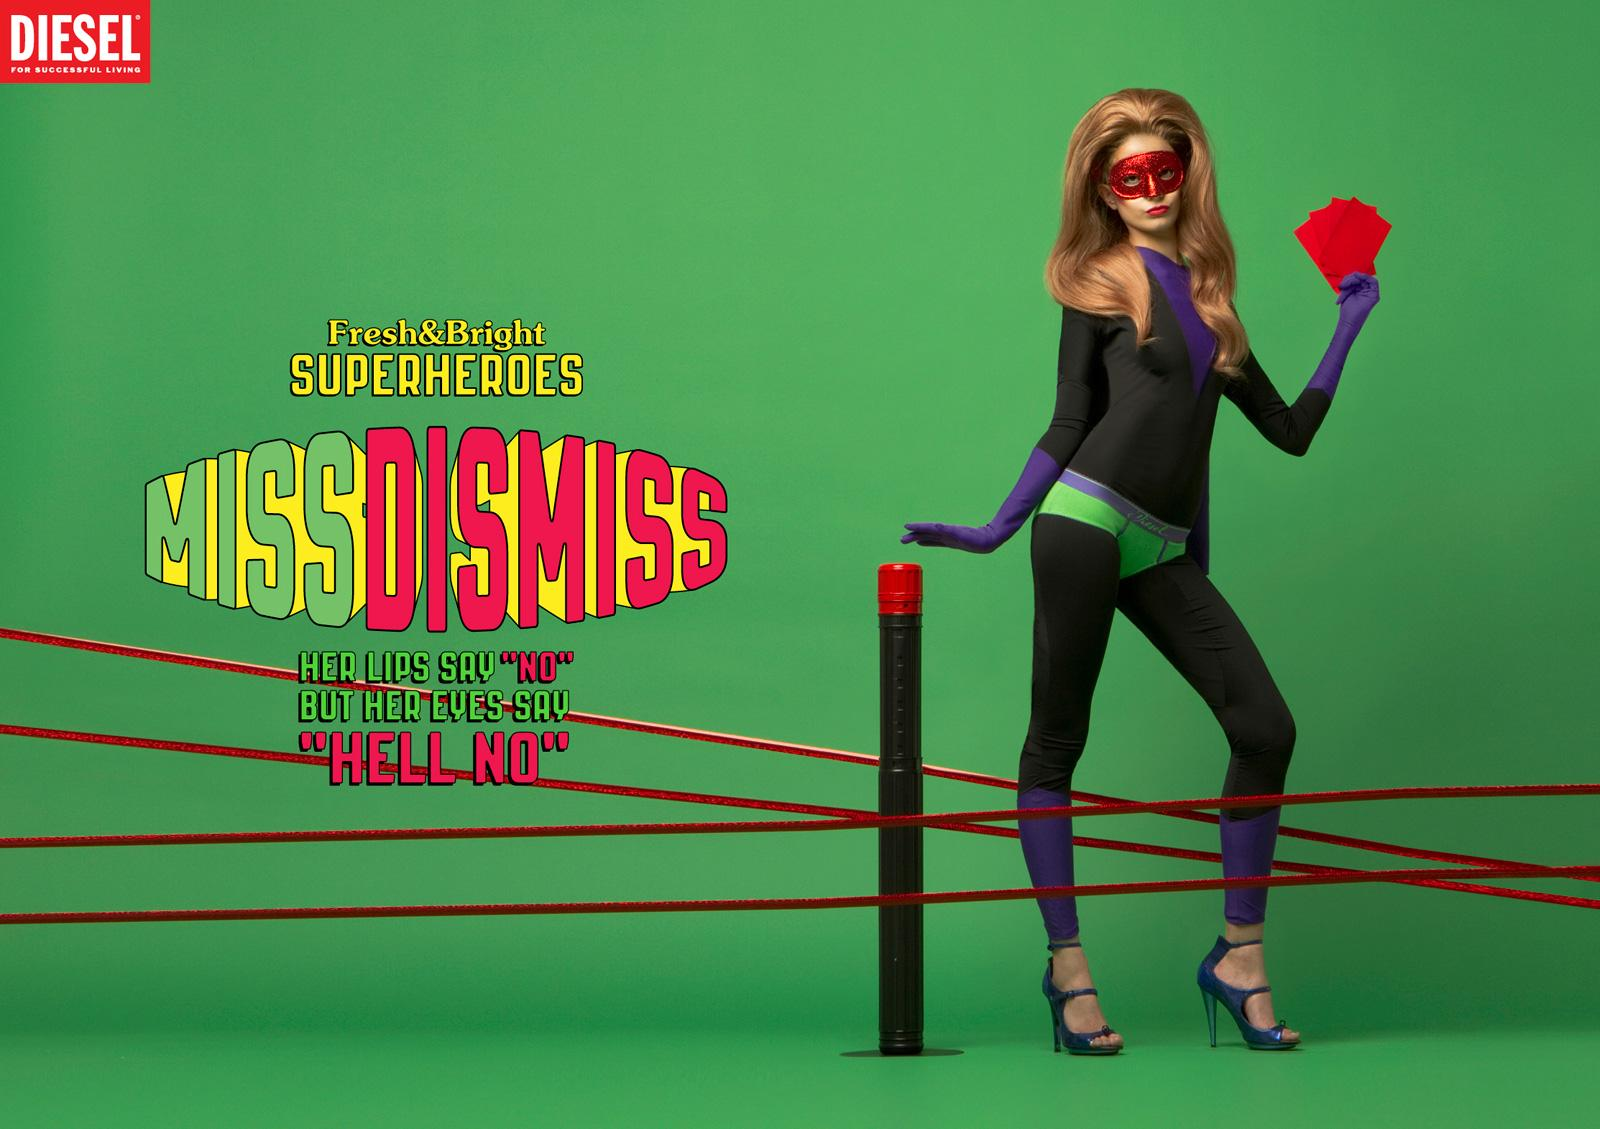 Diesel Print Ad -  Fresh & Bright Superheroes, Miss Dismiss